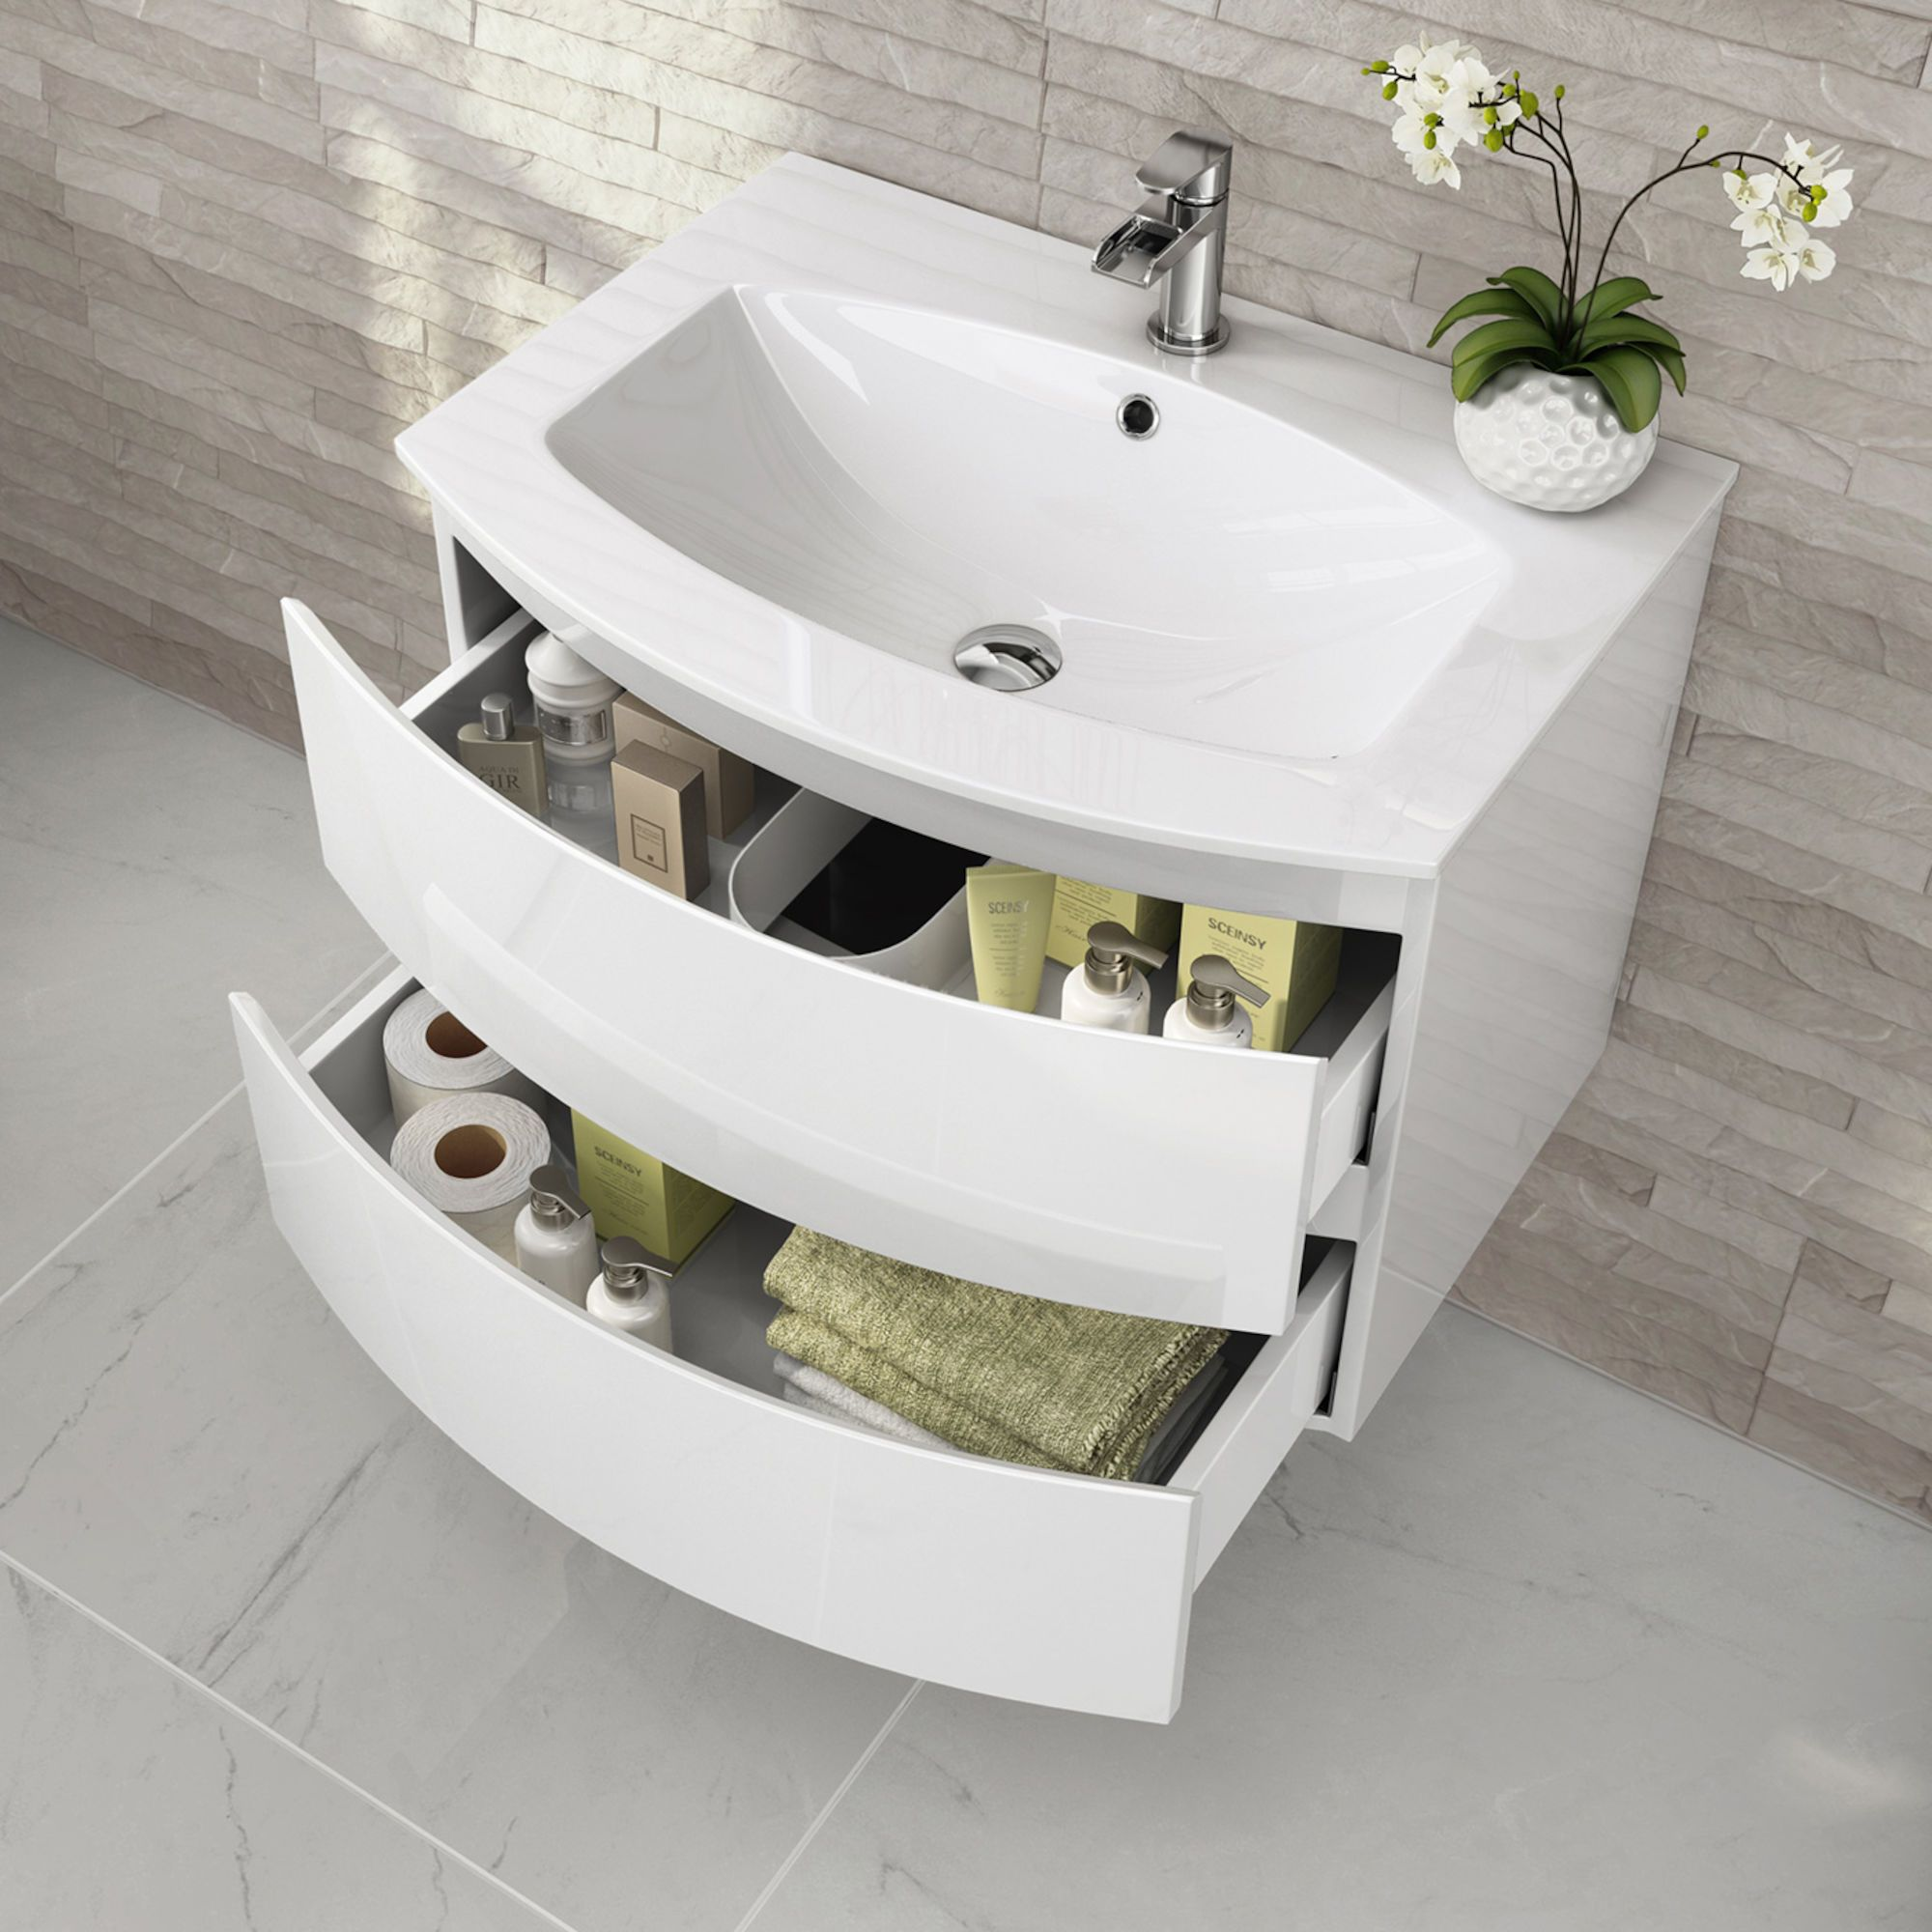 700mm Amelie High Gloss White Curved Vanity Unit Wall Hung Soak Com Bathroom Design Small Vanity Units Modern Bathroom Sink